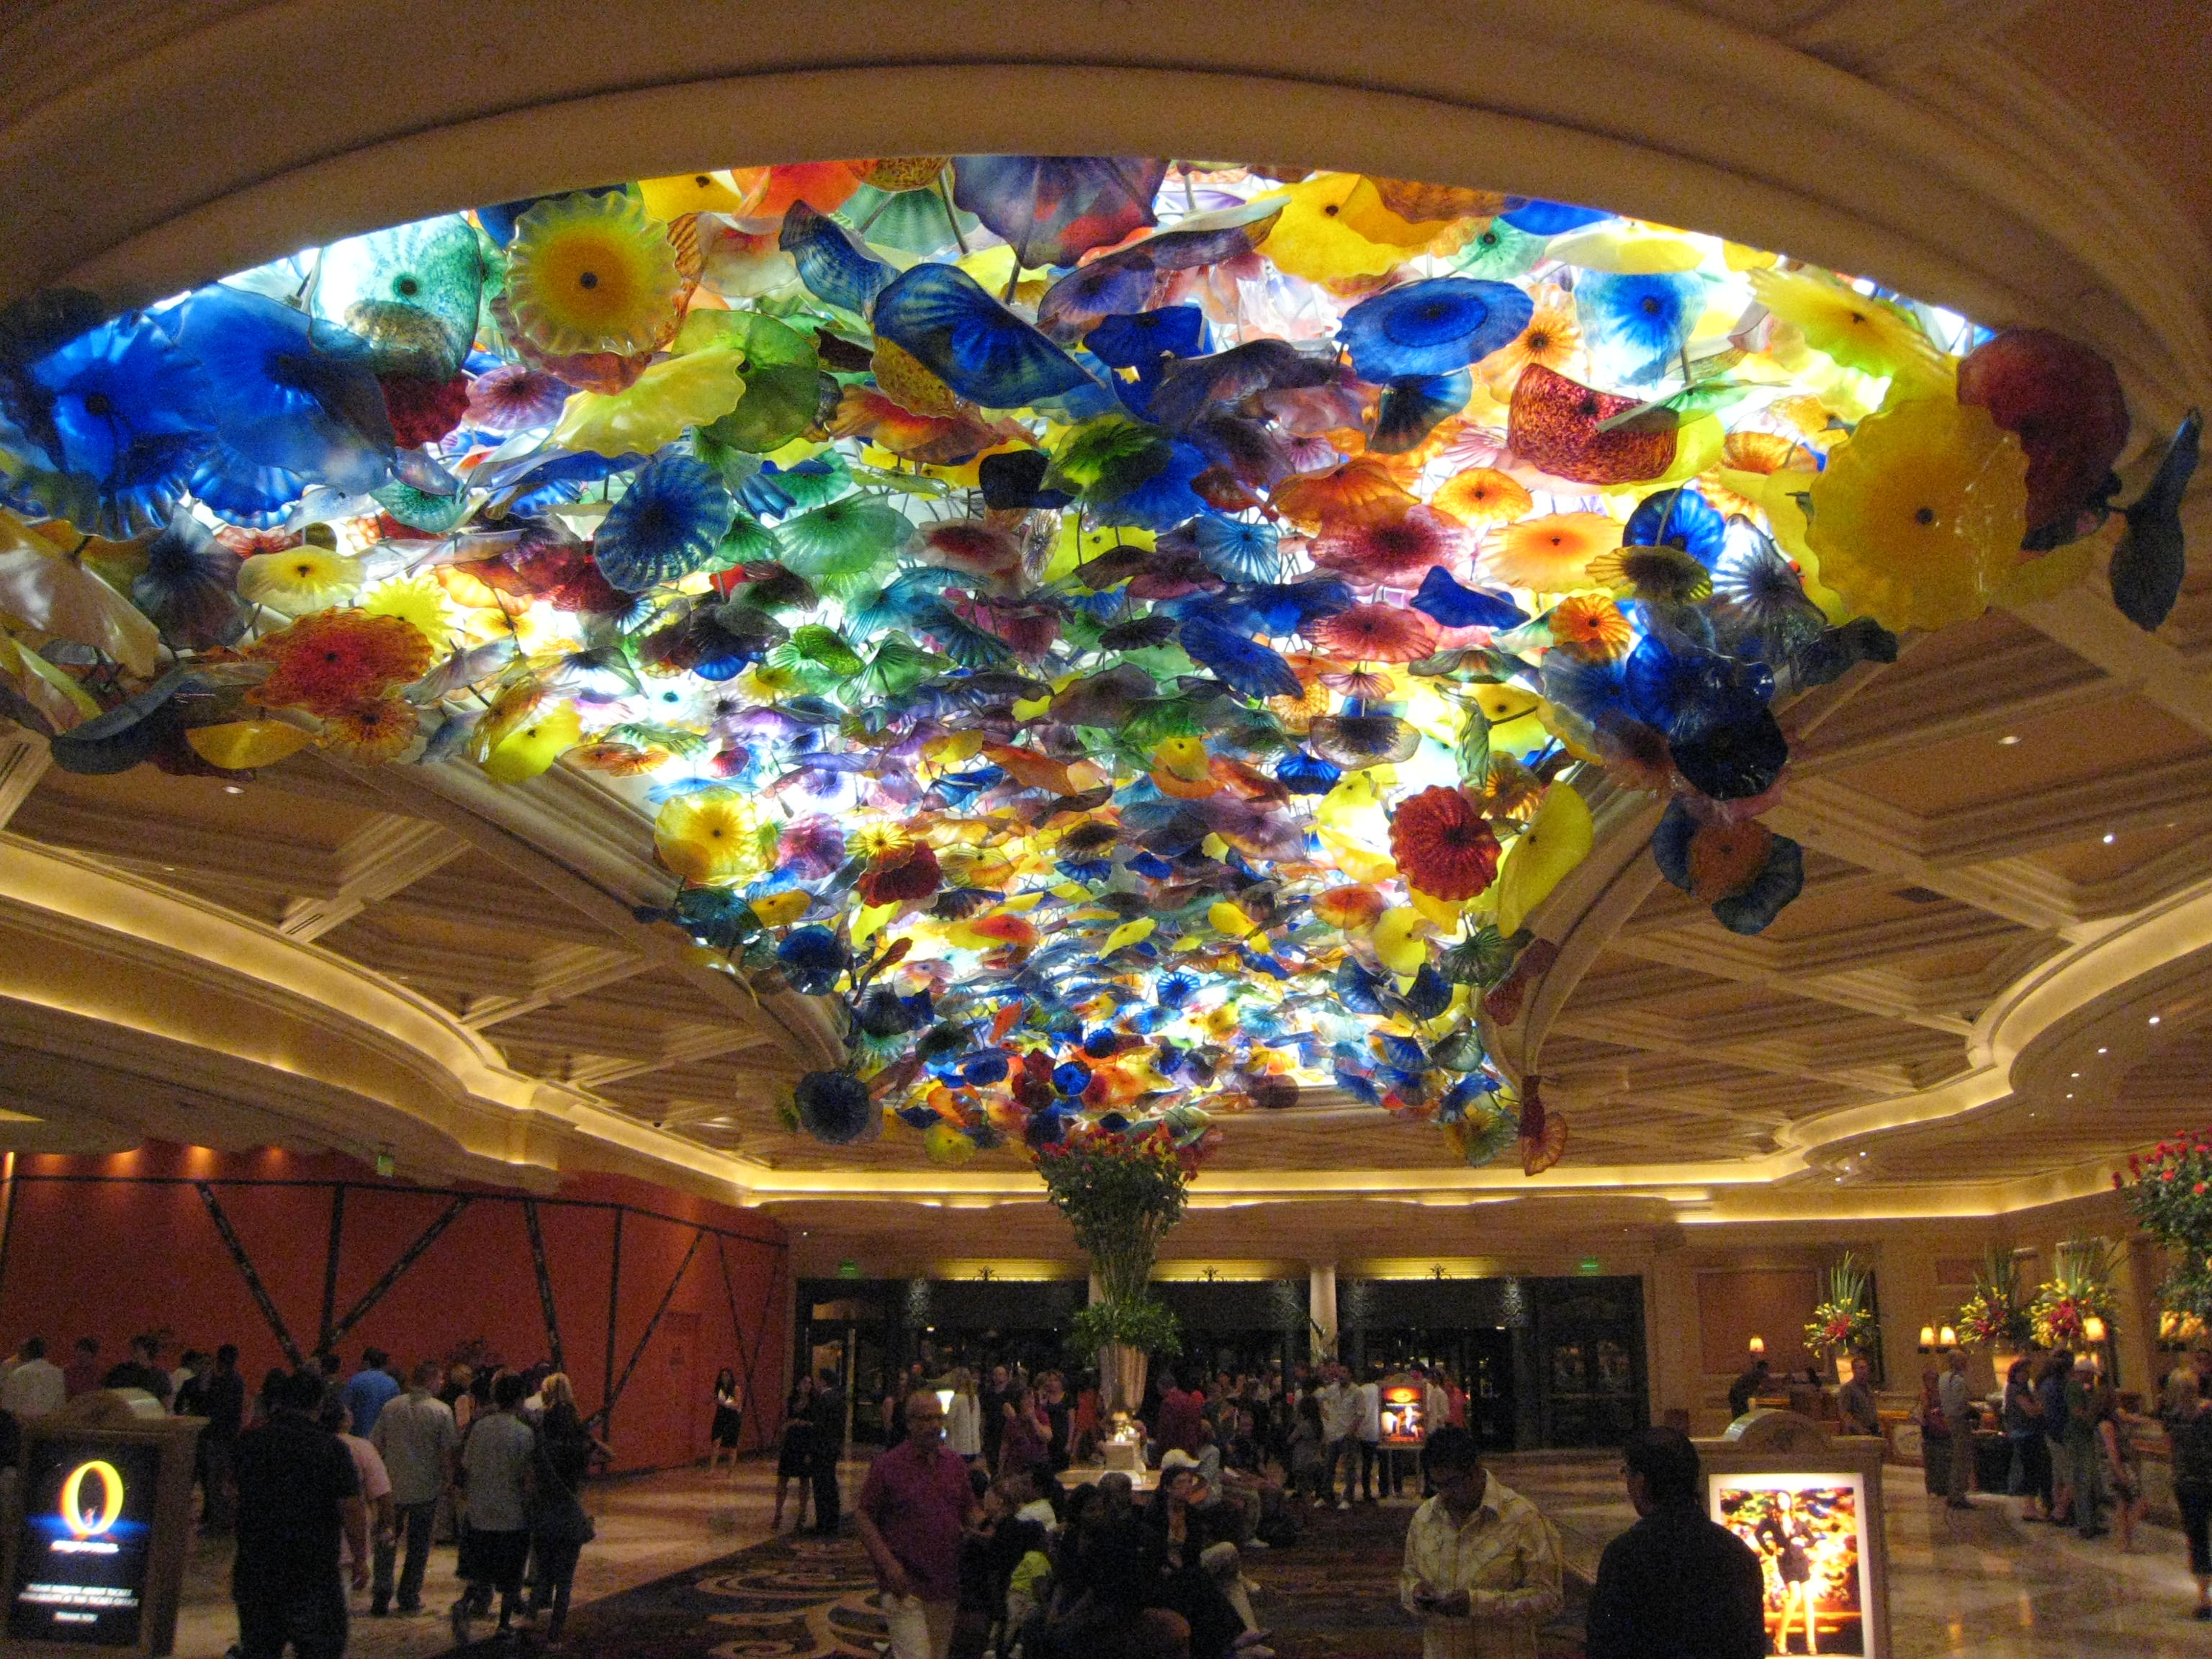 Bellagio lobby ceiling.